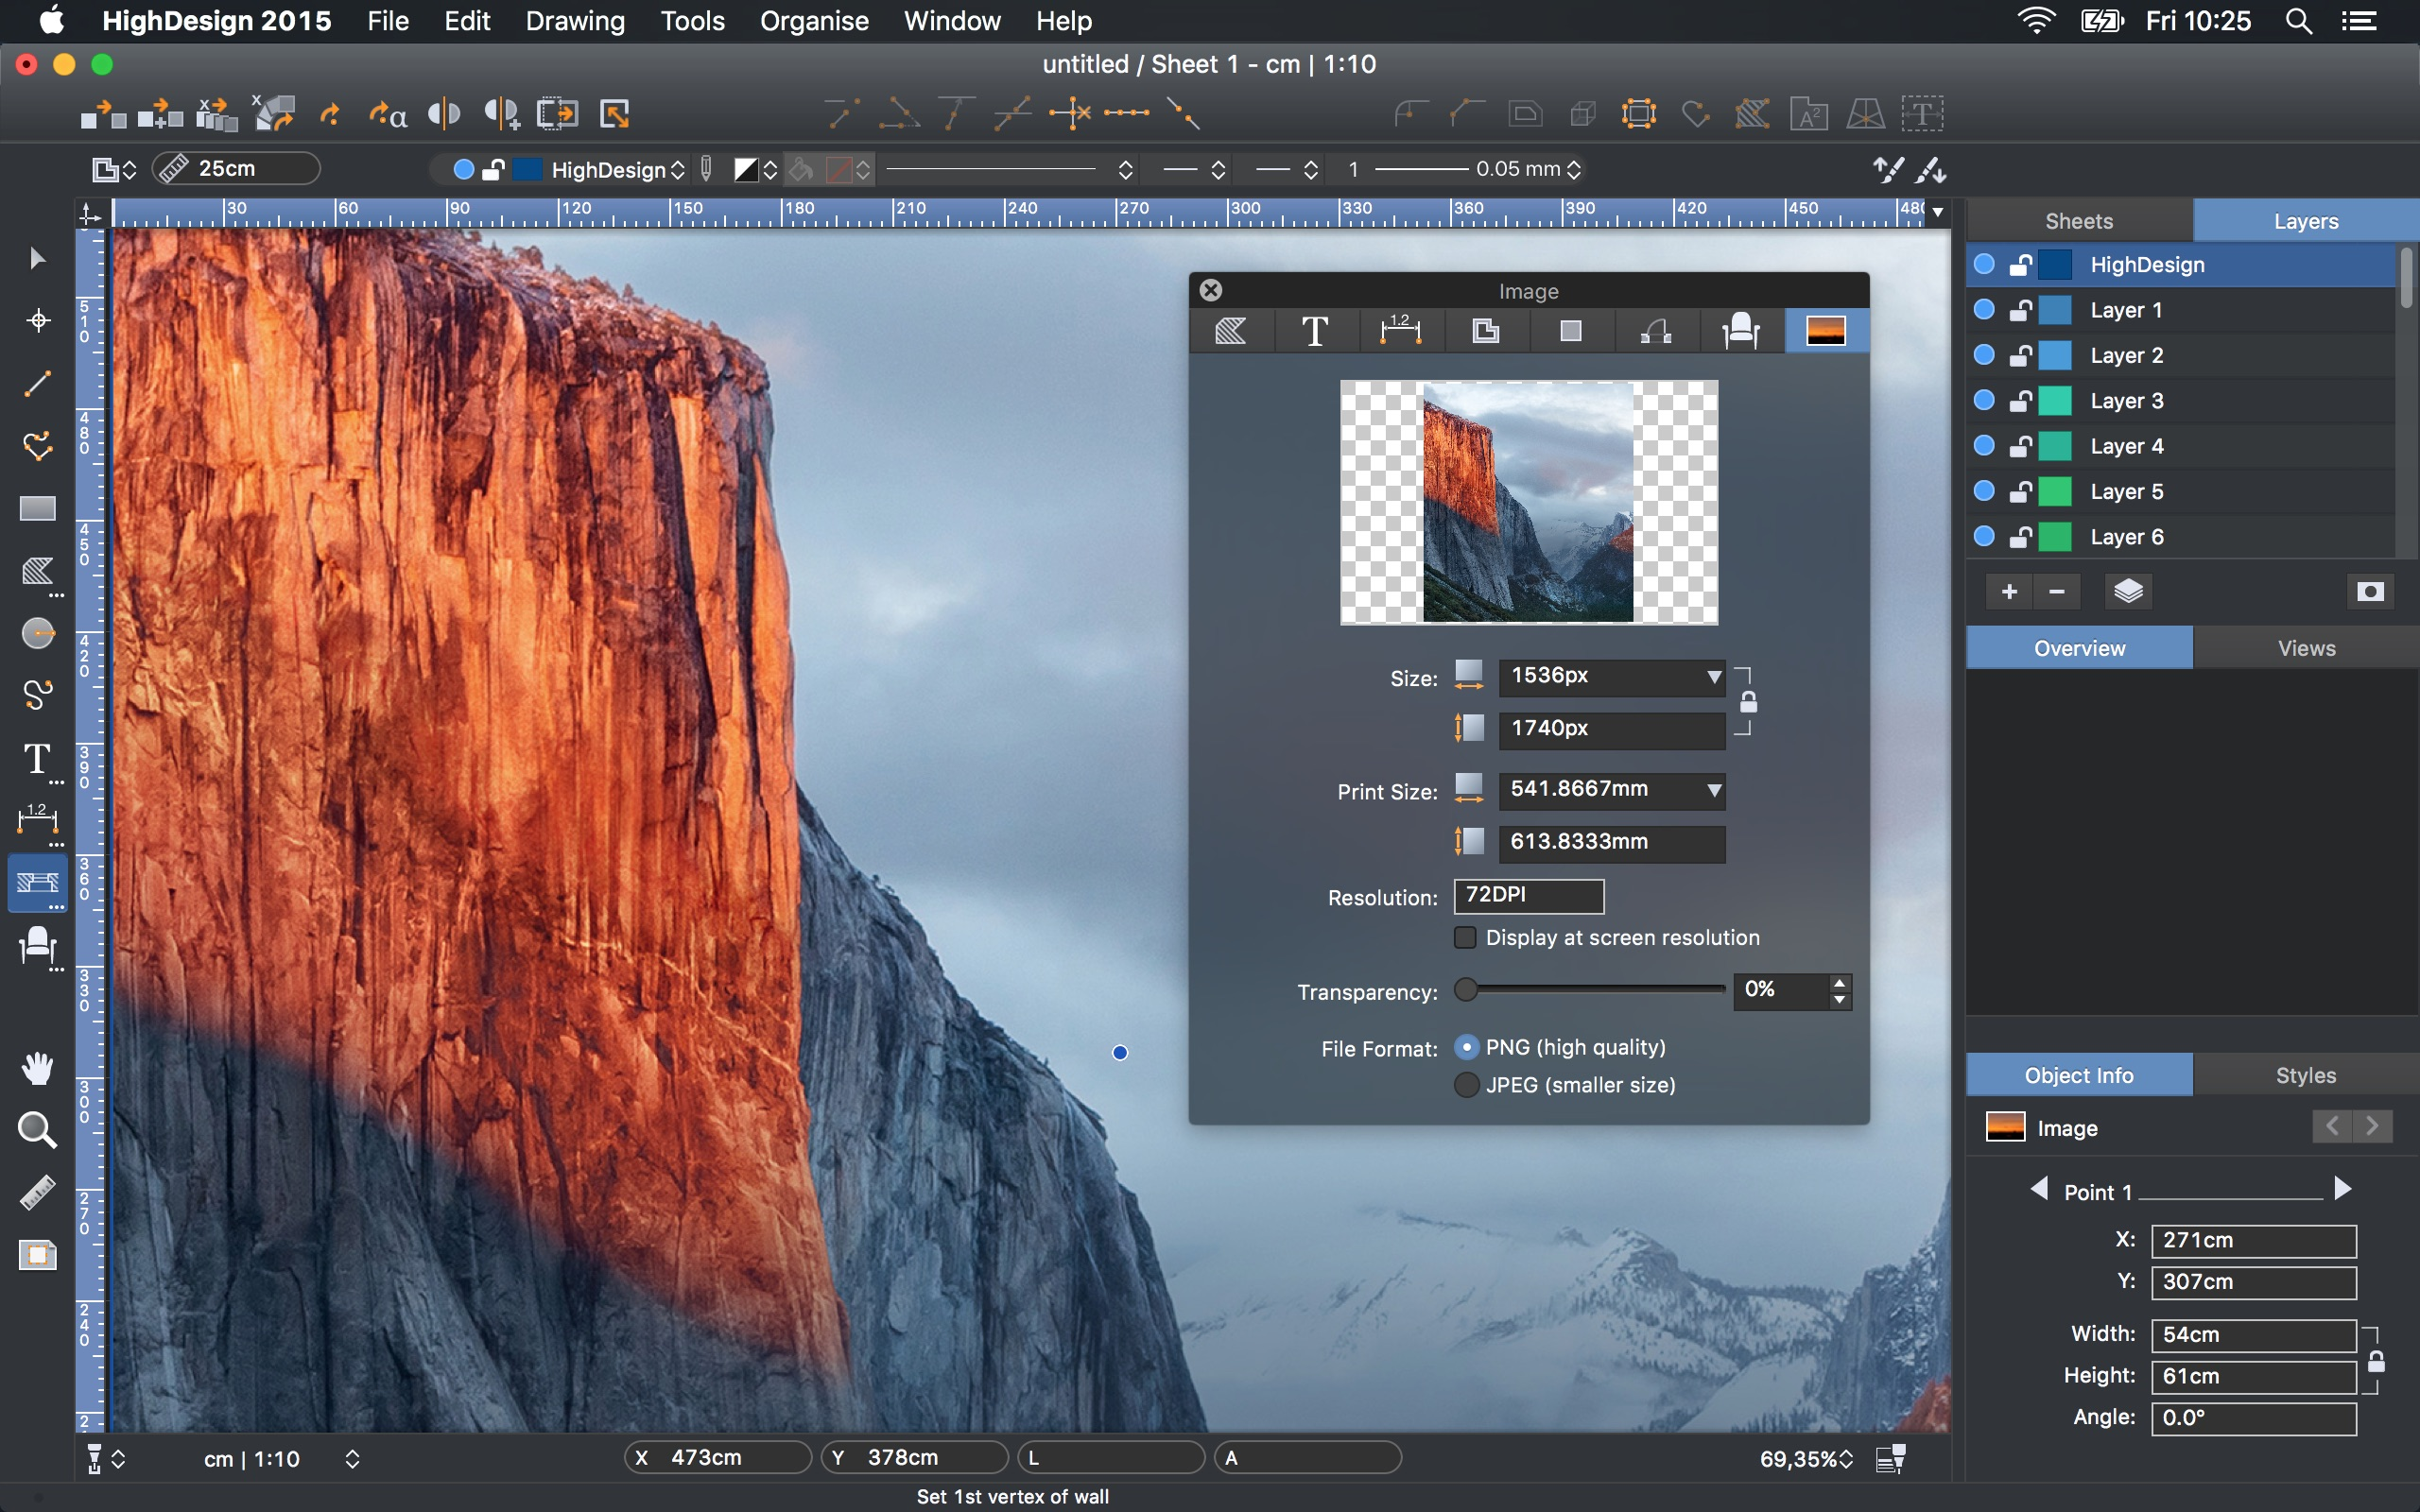 HighDesign 2015.2.1 Available, Ready for OS X El Capitan